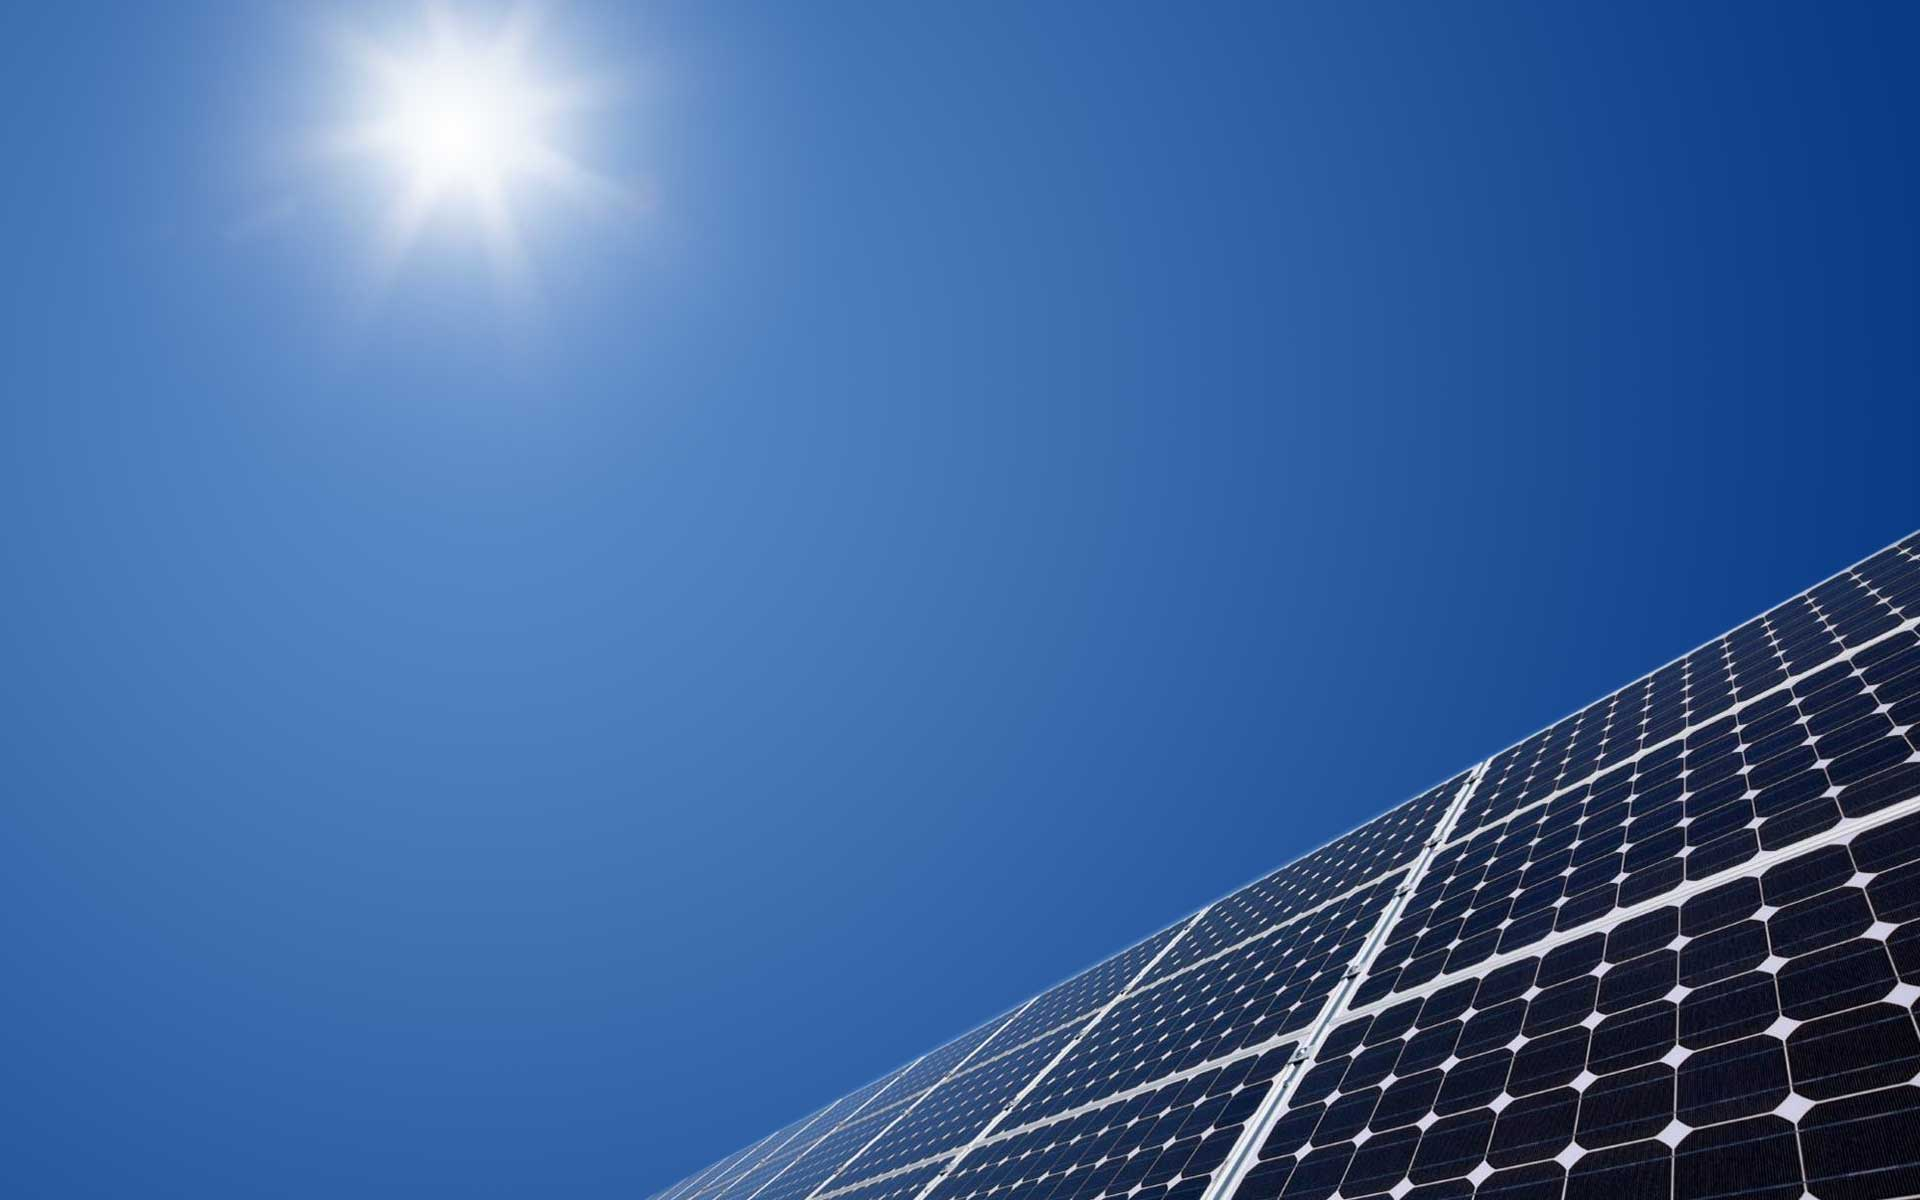 Download Solar Cell Wallpaper Gallery